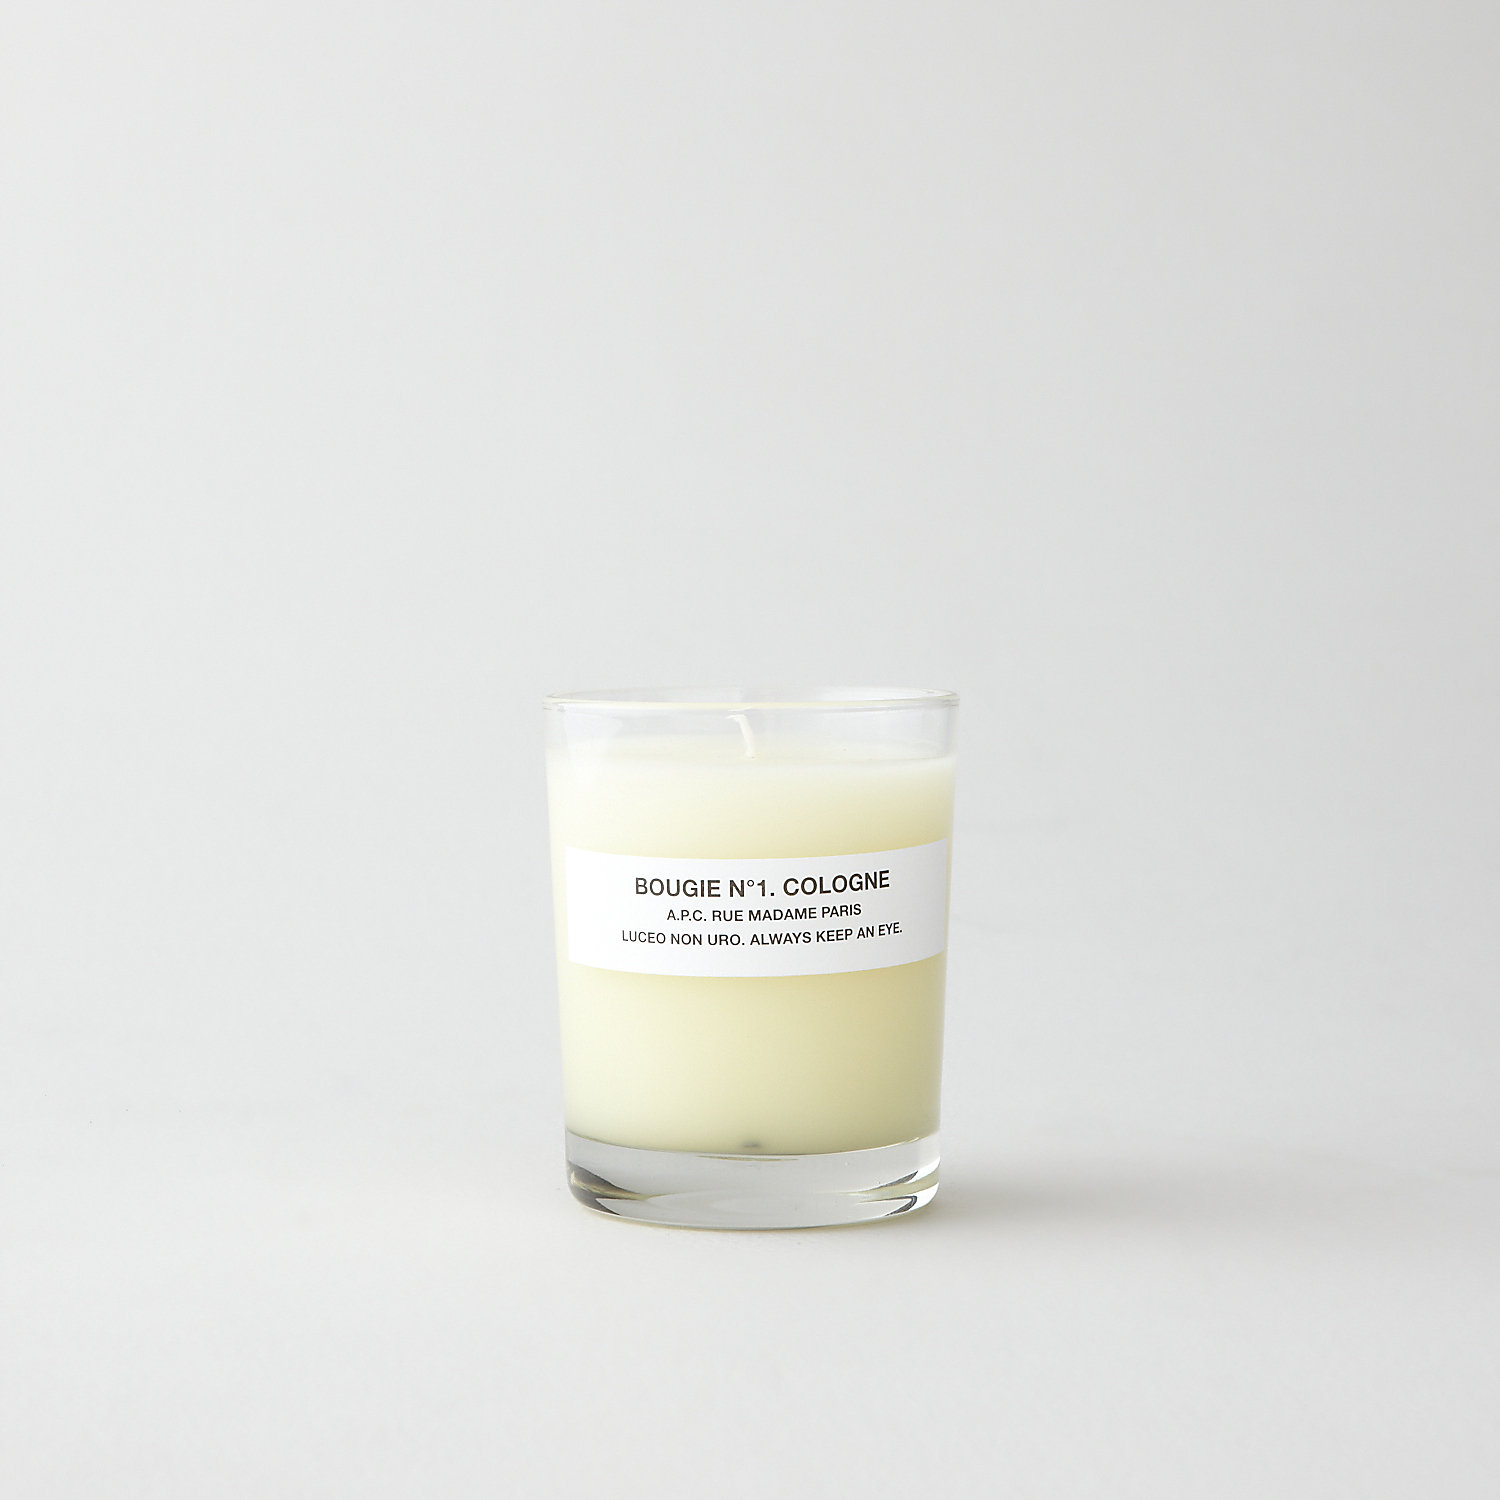 BOUGIE No.1 COLOGNE CANDLE